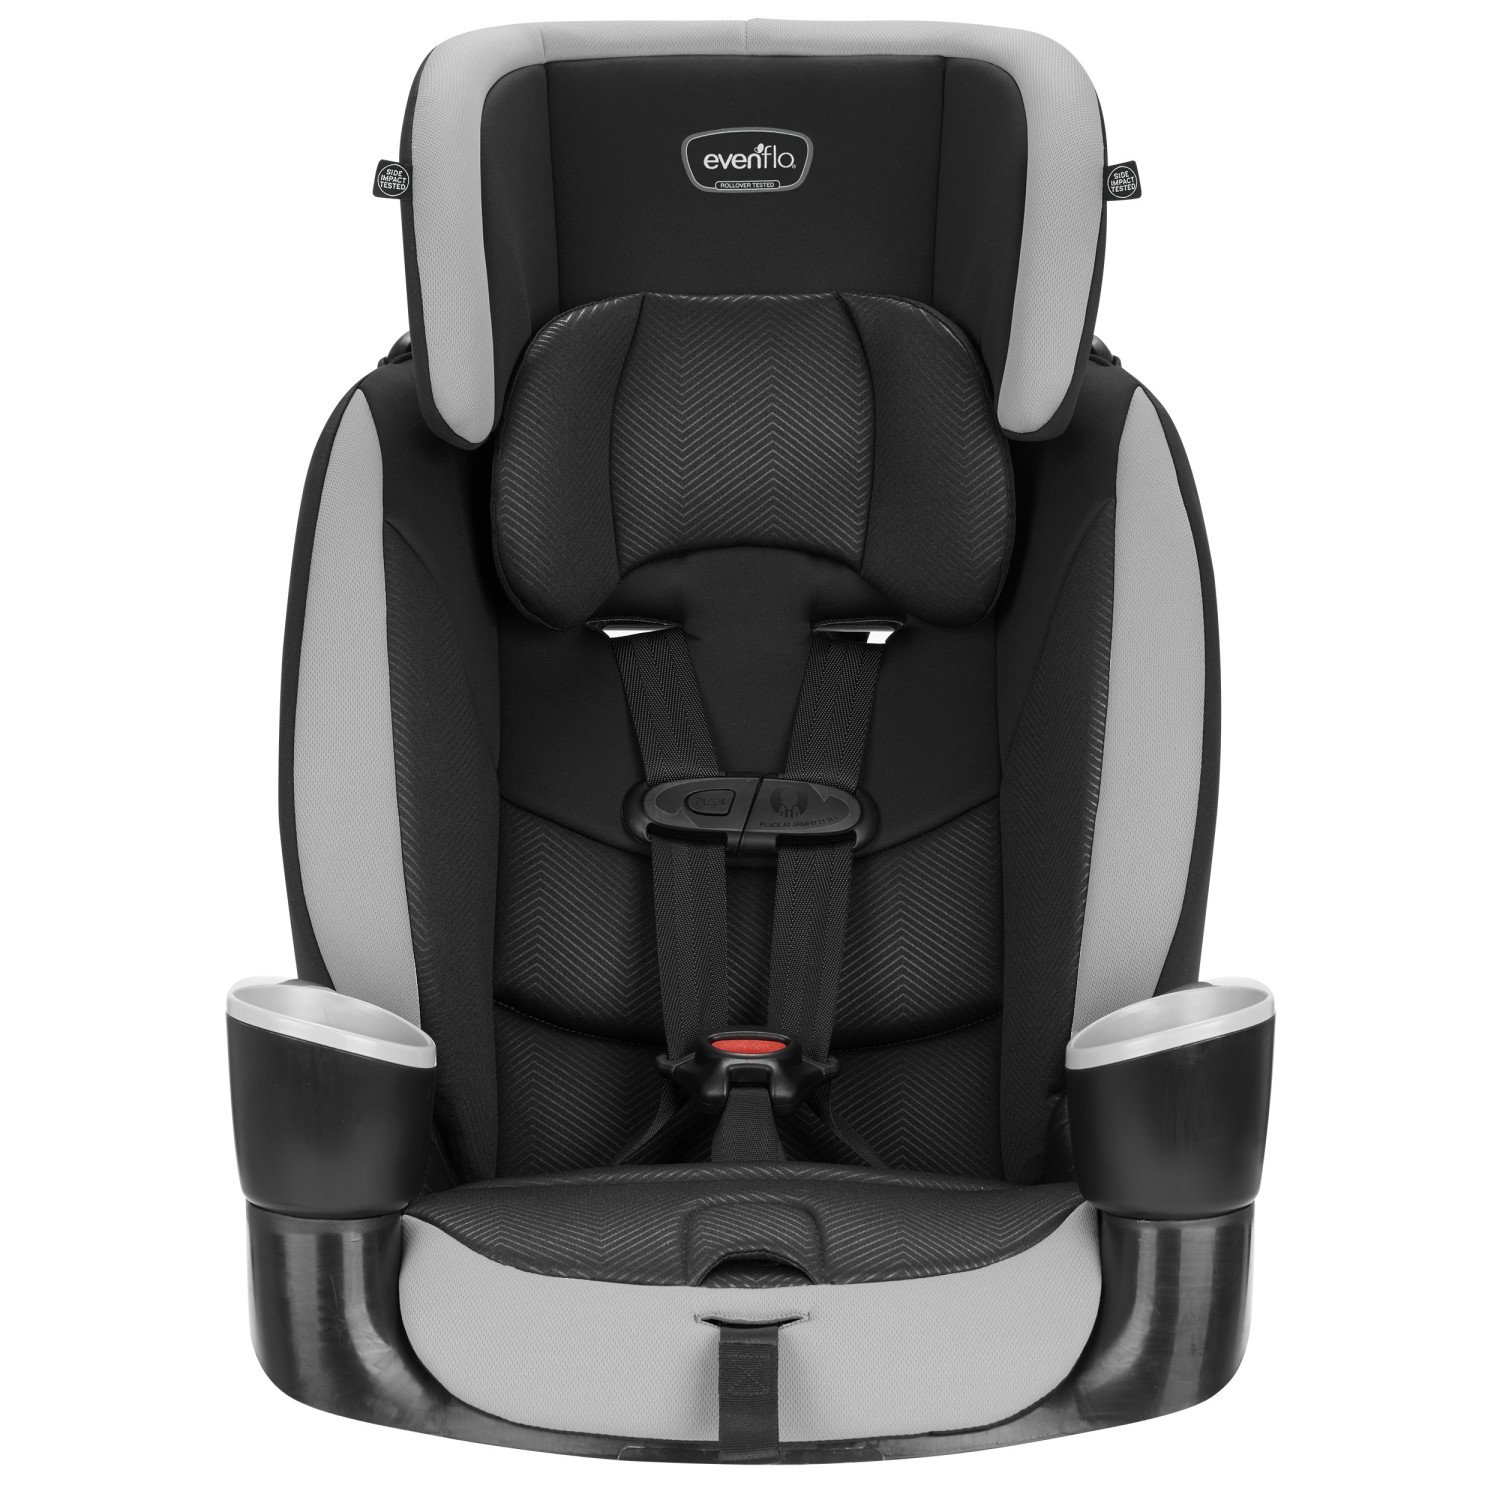 Evenflo Car Seat Under budget Car Seat for 4 year old